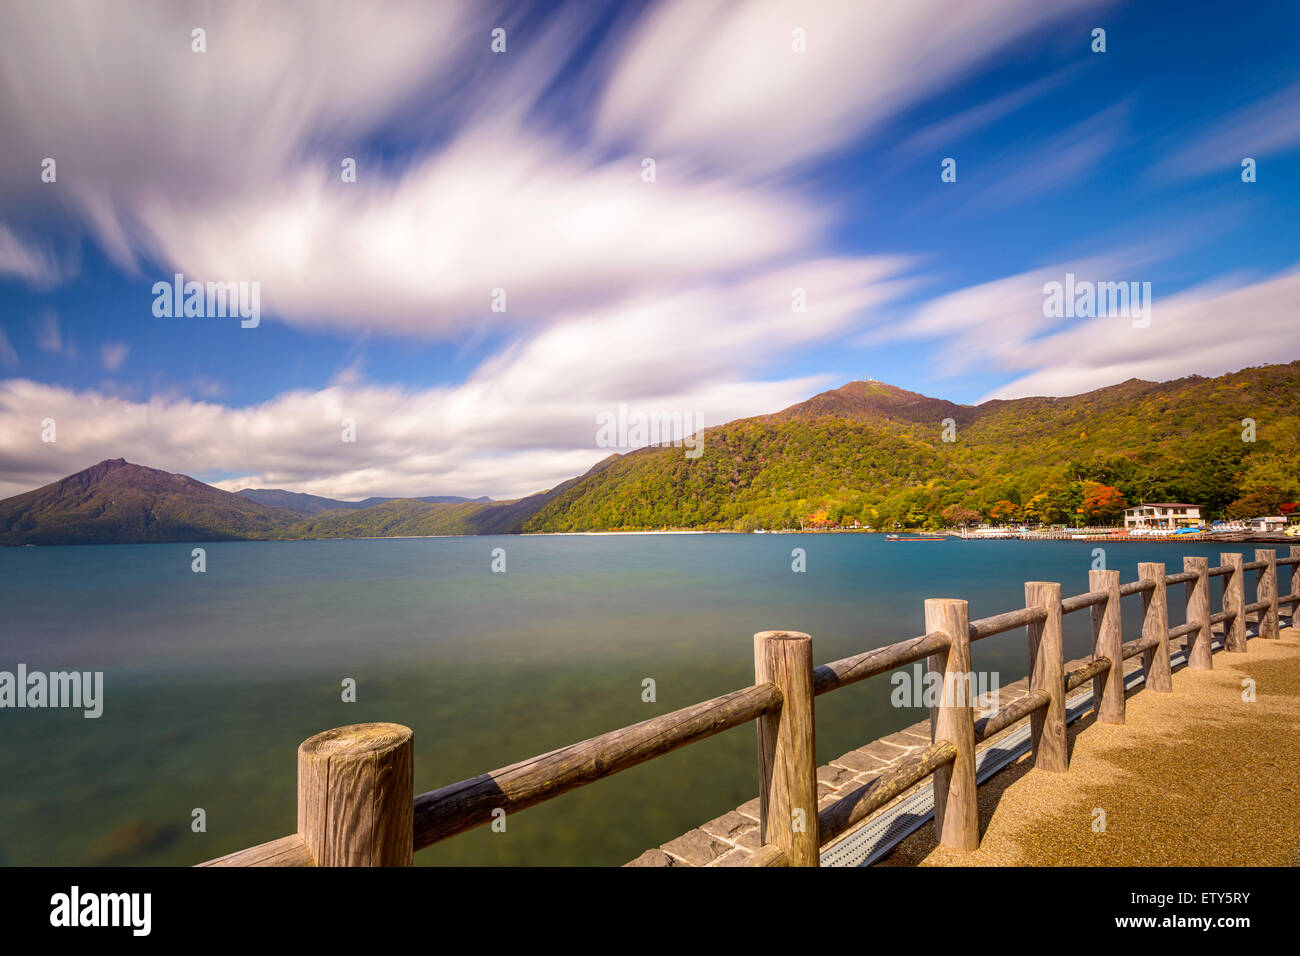 Shikotsu-Toya National Park, Japan at Lake Shikotsu. - Stock Image